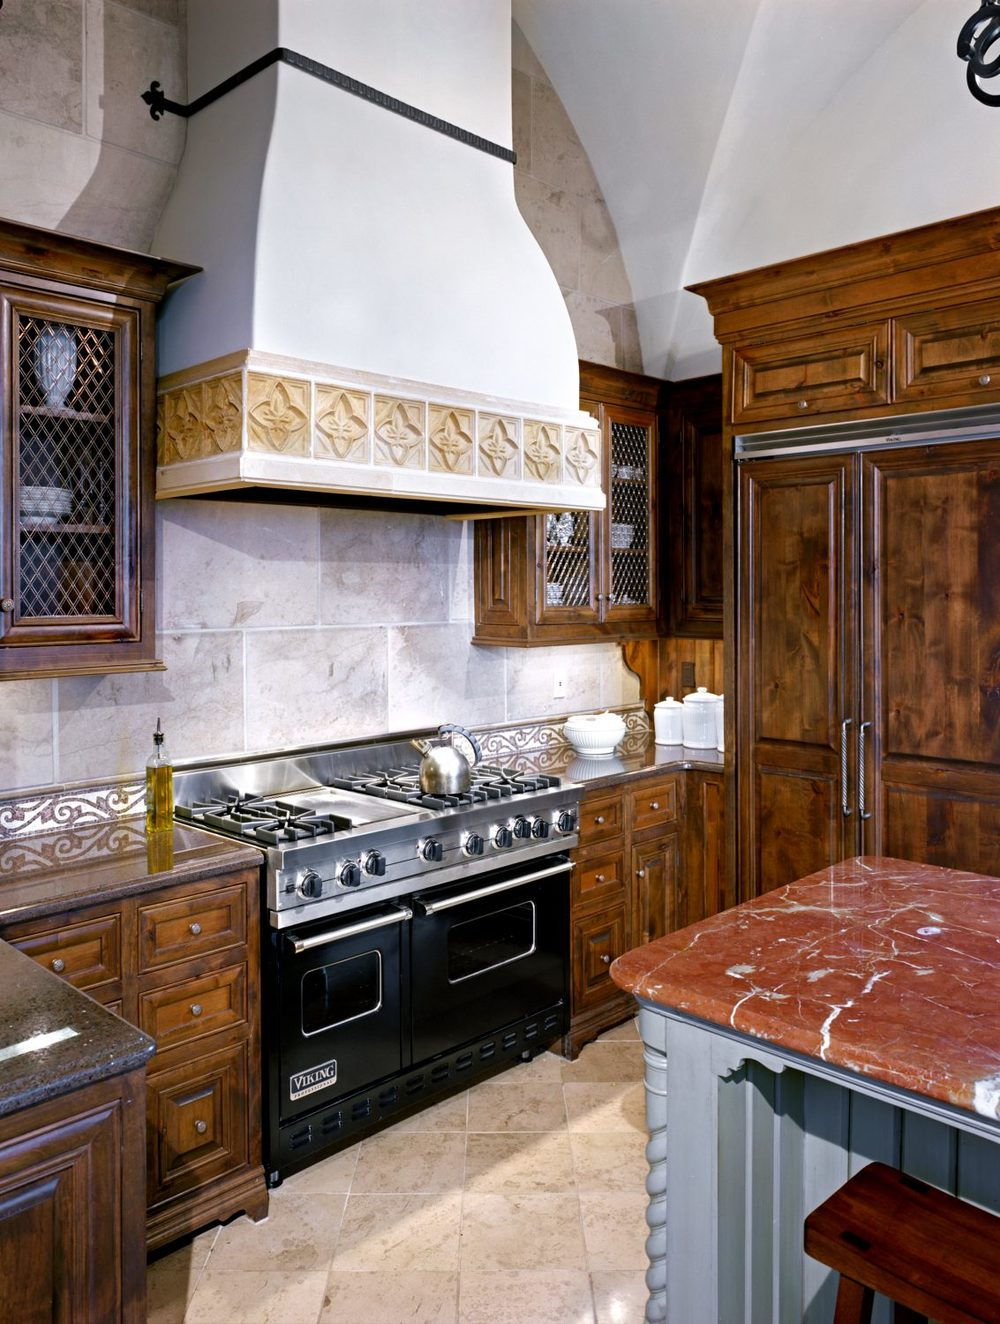 Architecture-Home-Coldwater-Canyon-10-Kitchen.jpg